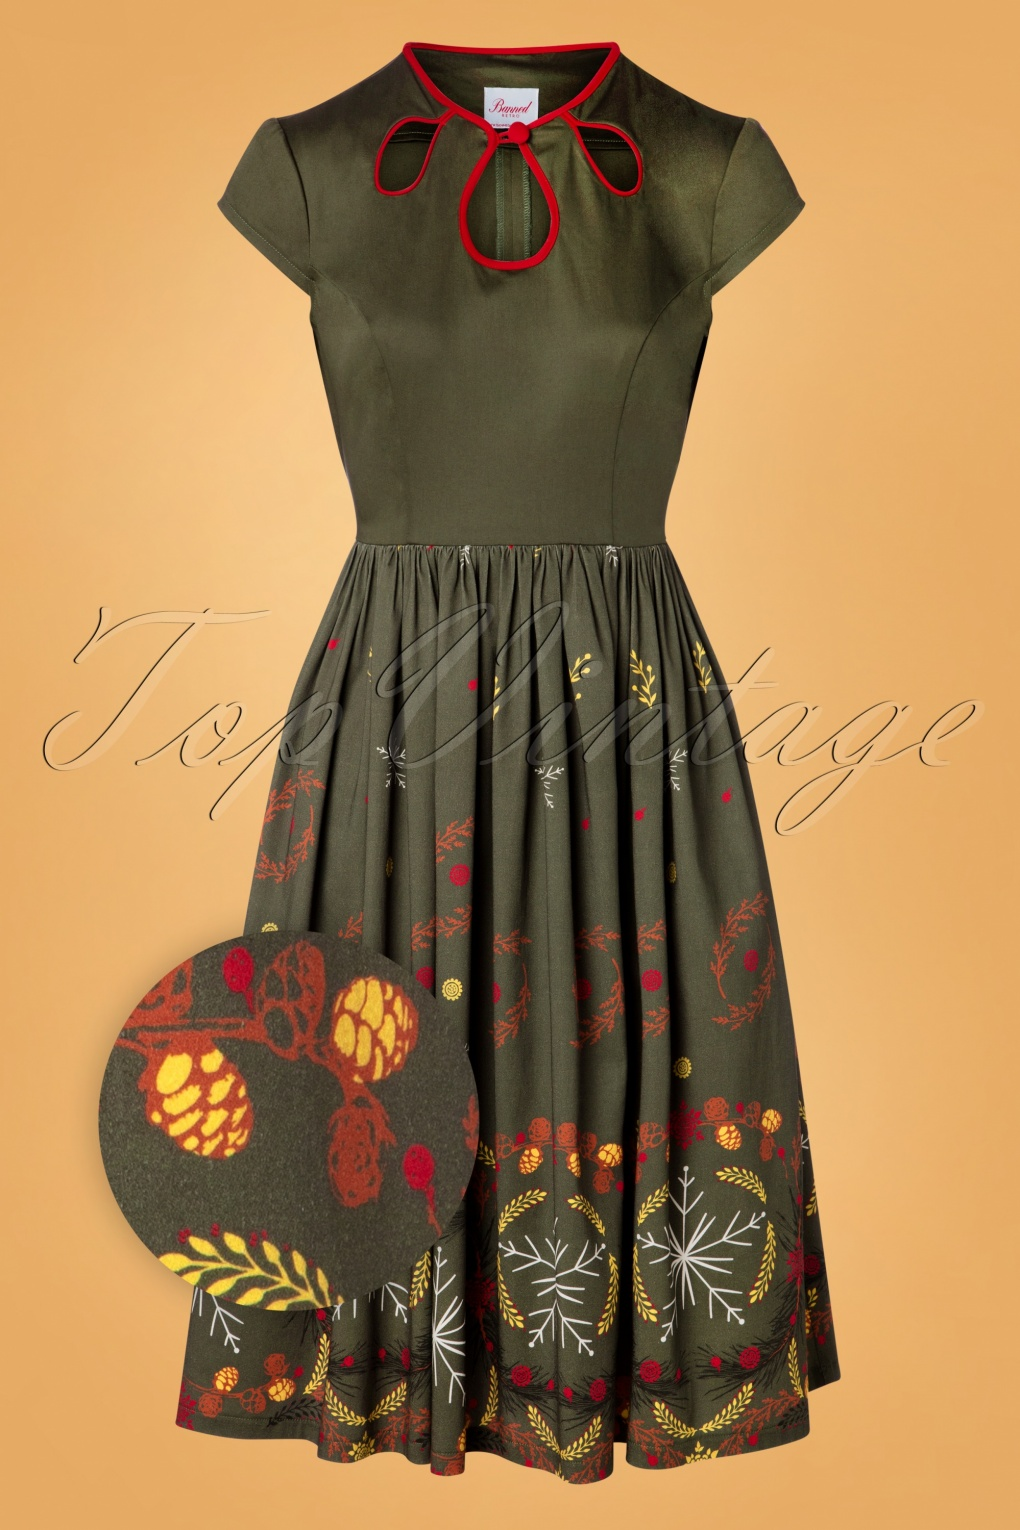 Cottagecore Clothing, Soft Aesthetic 50s Winter Leaves Swing Dress in Green £49.21 AT vintagedancer.com